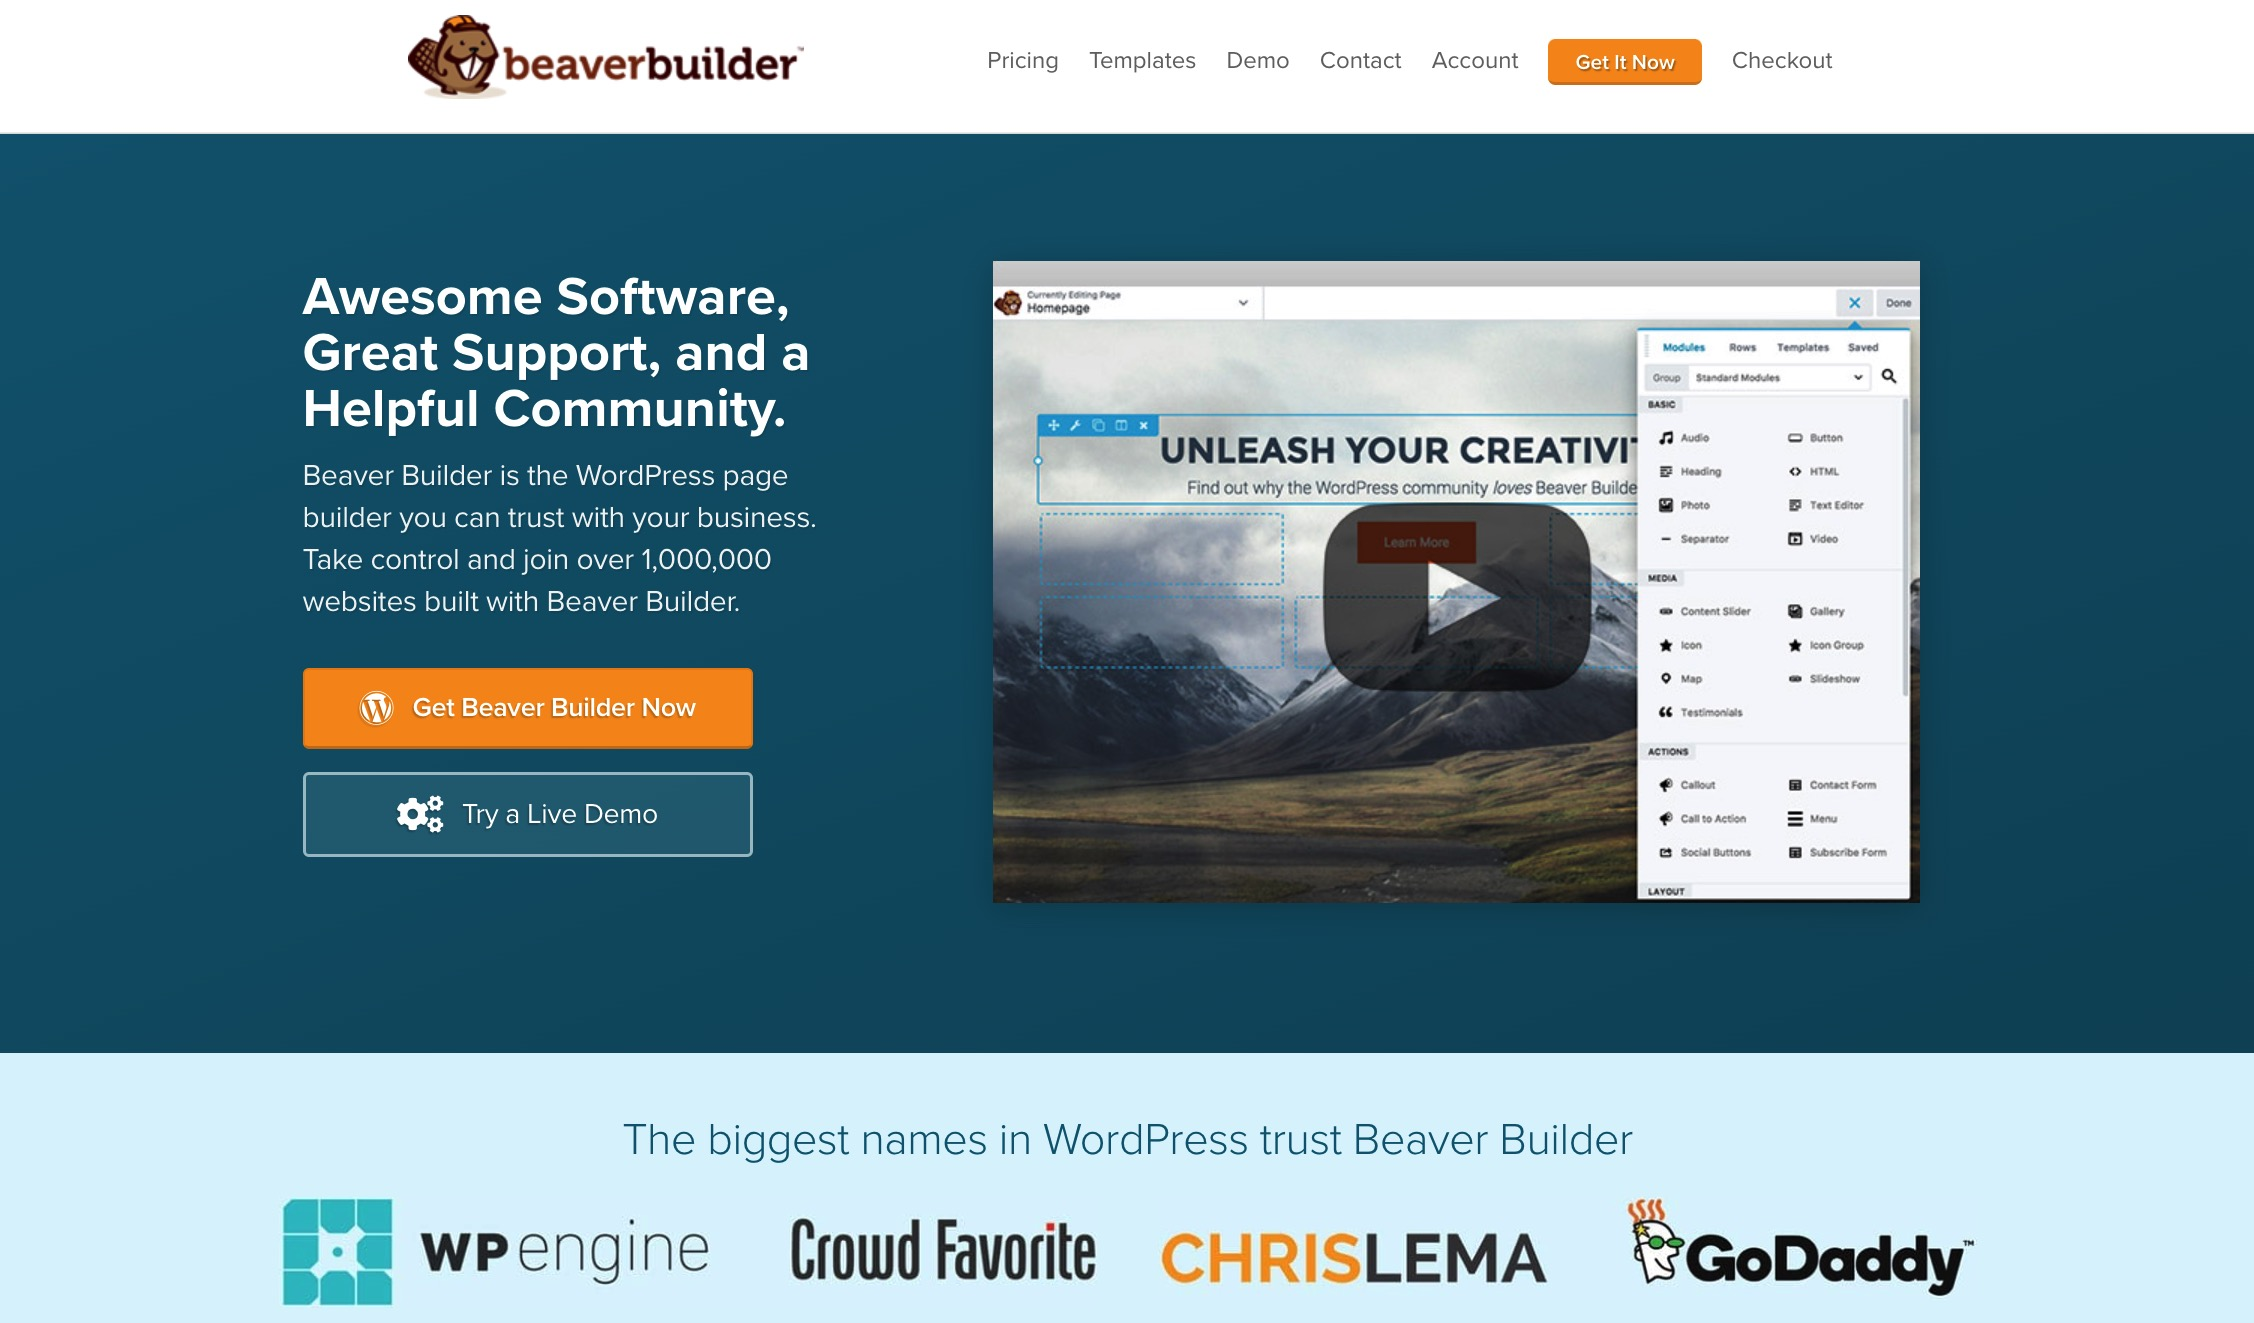 Beaver Builder - among the best WordPress page builders for multilingual sites